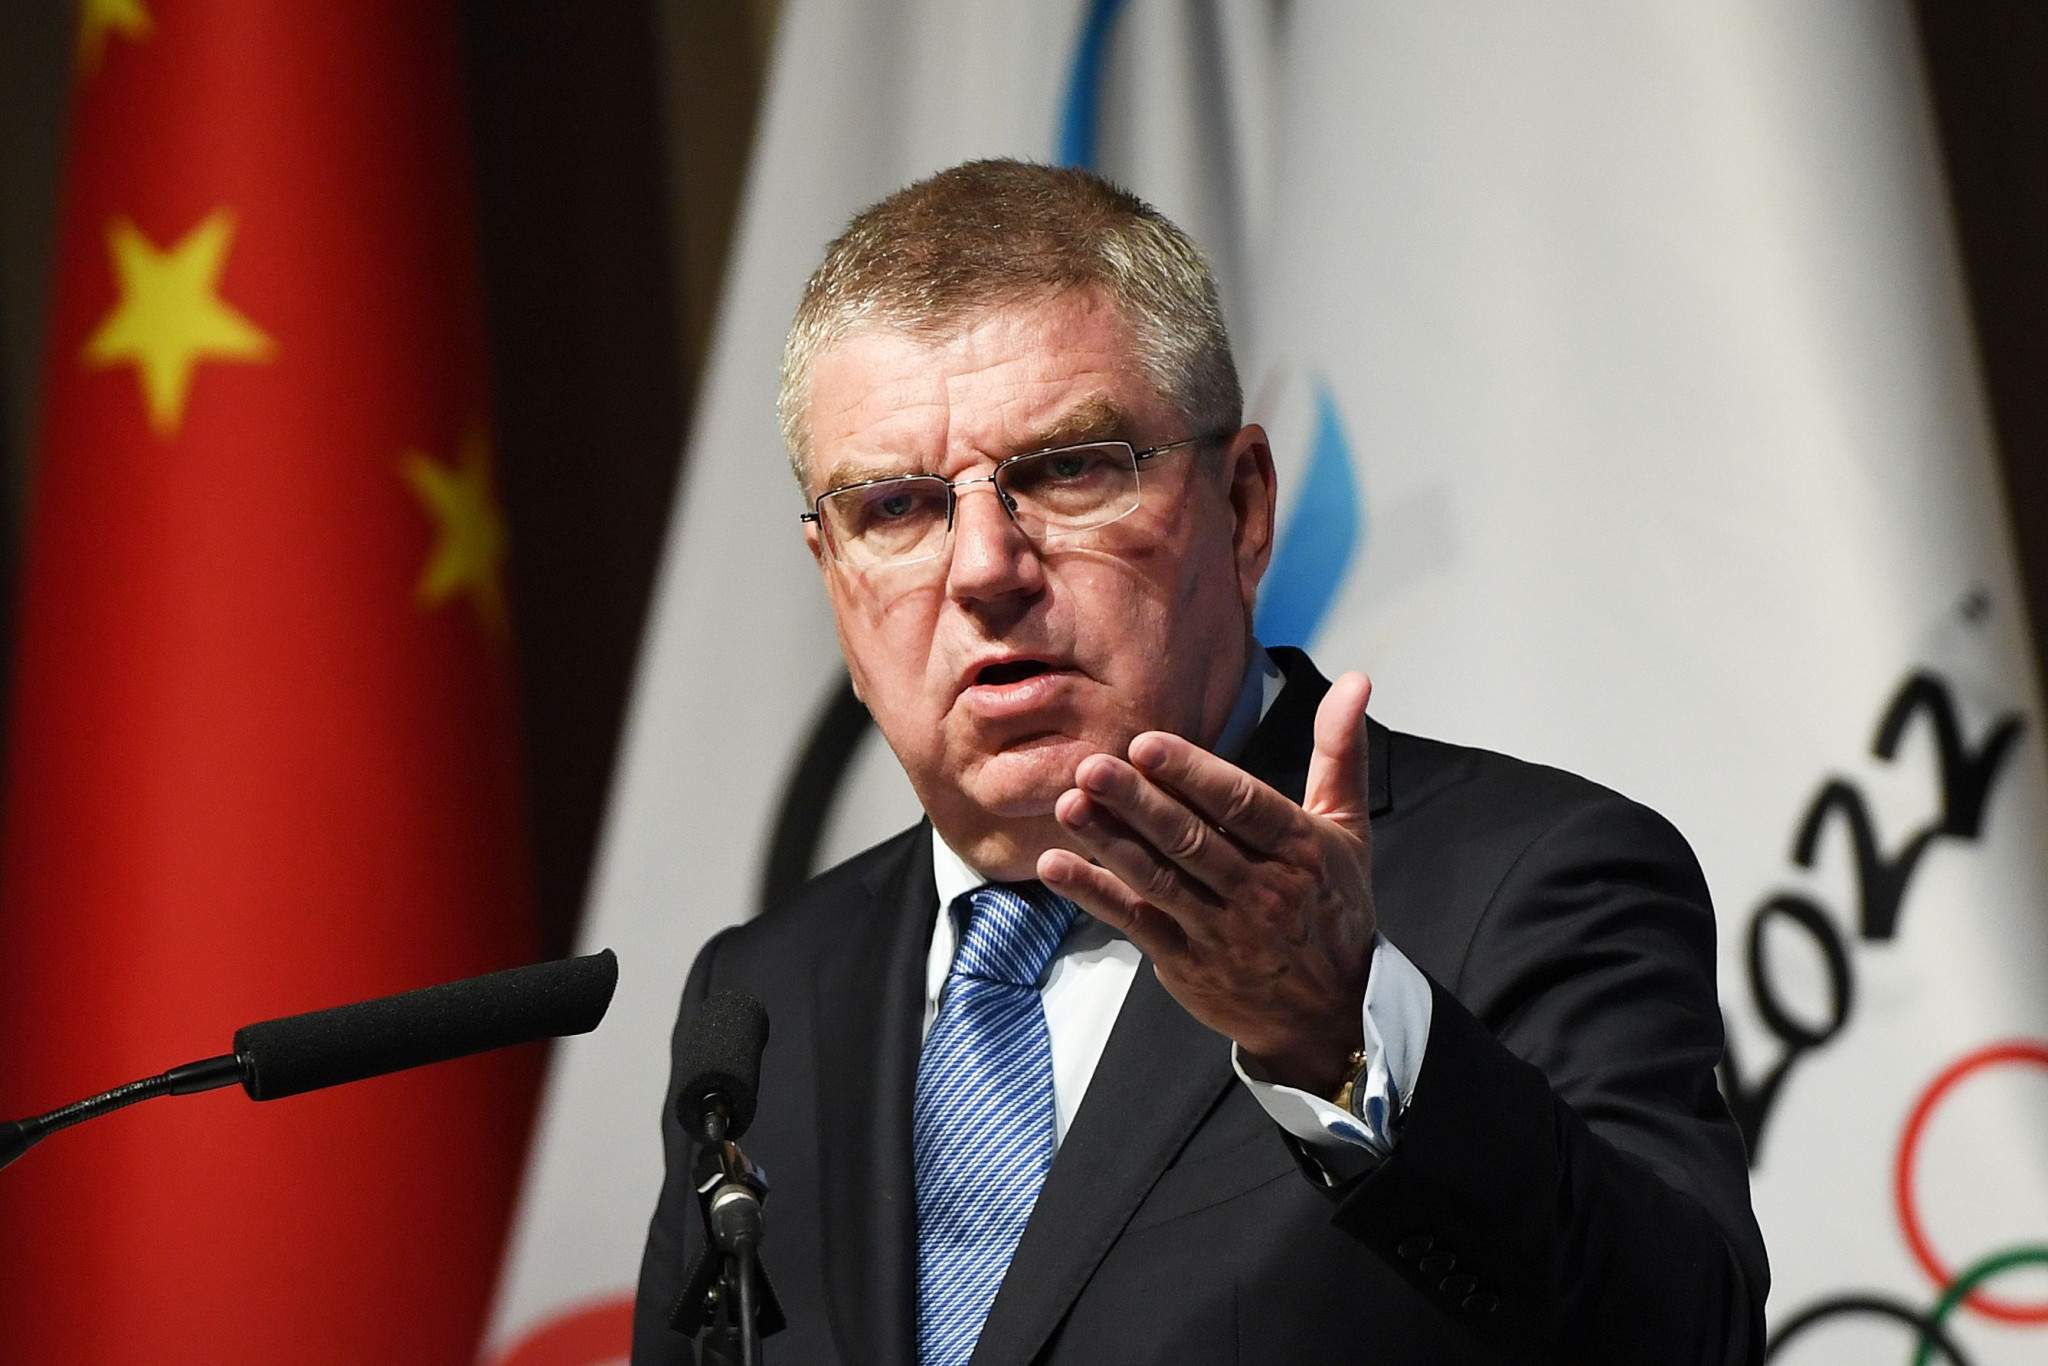 IOC President Thomas Bach is in Beijing for the official de-brief of the Pyeongchang 2018 Winter Olympic and Paralympic Games ©Getty Images